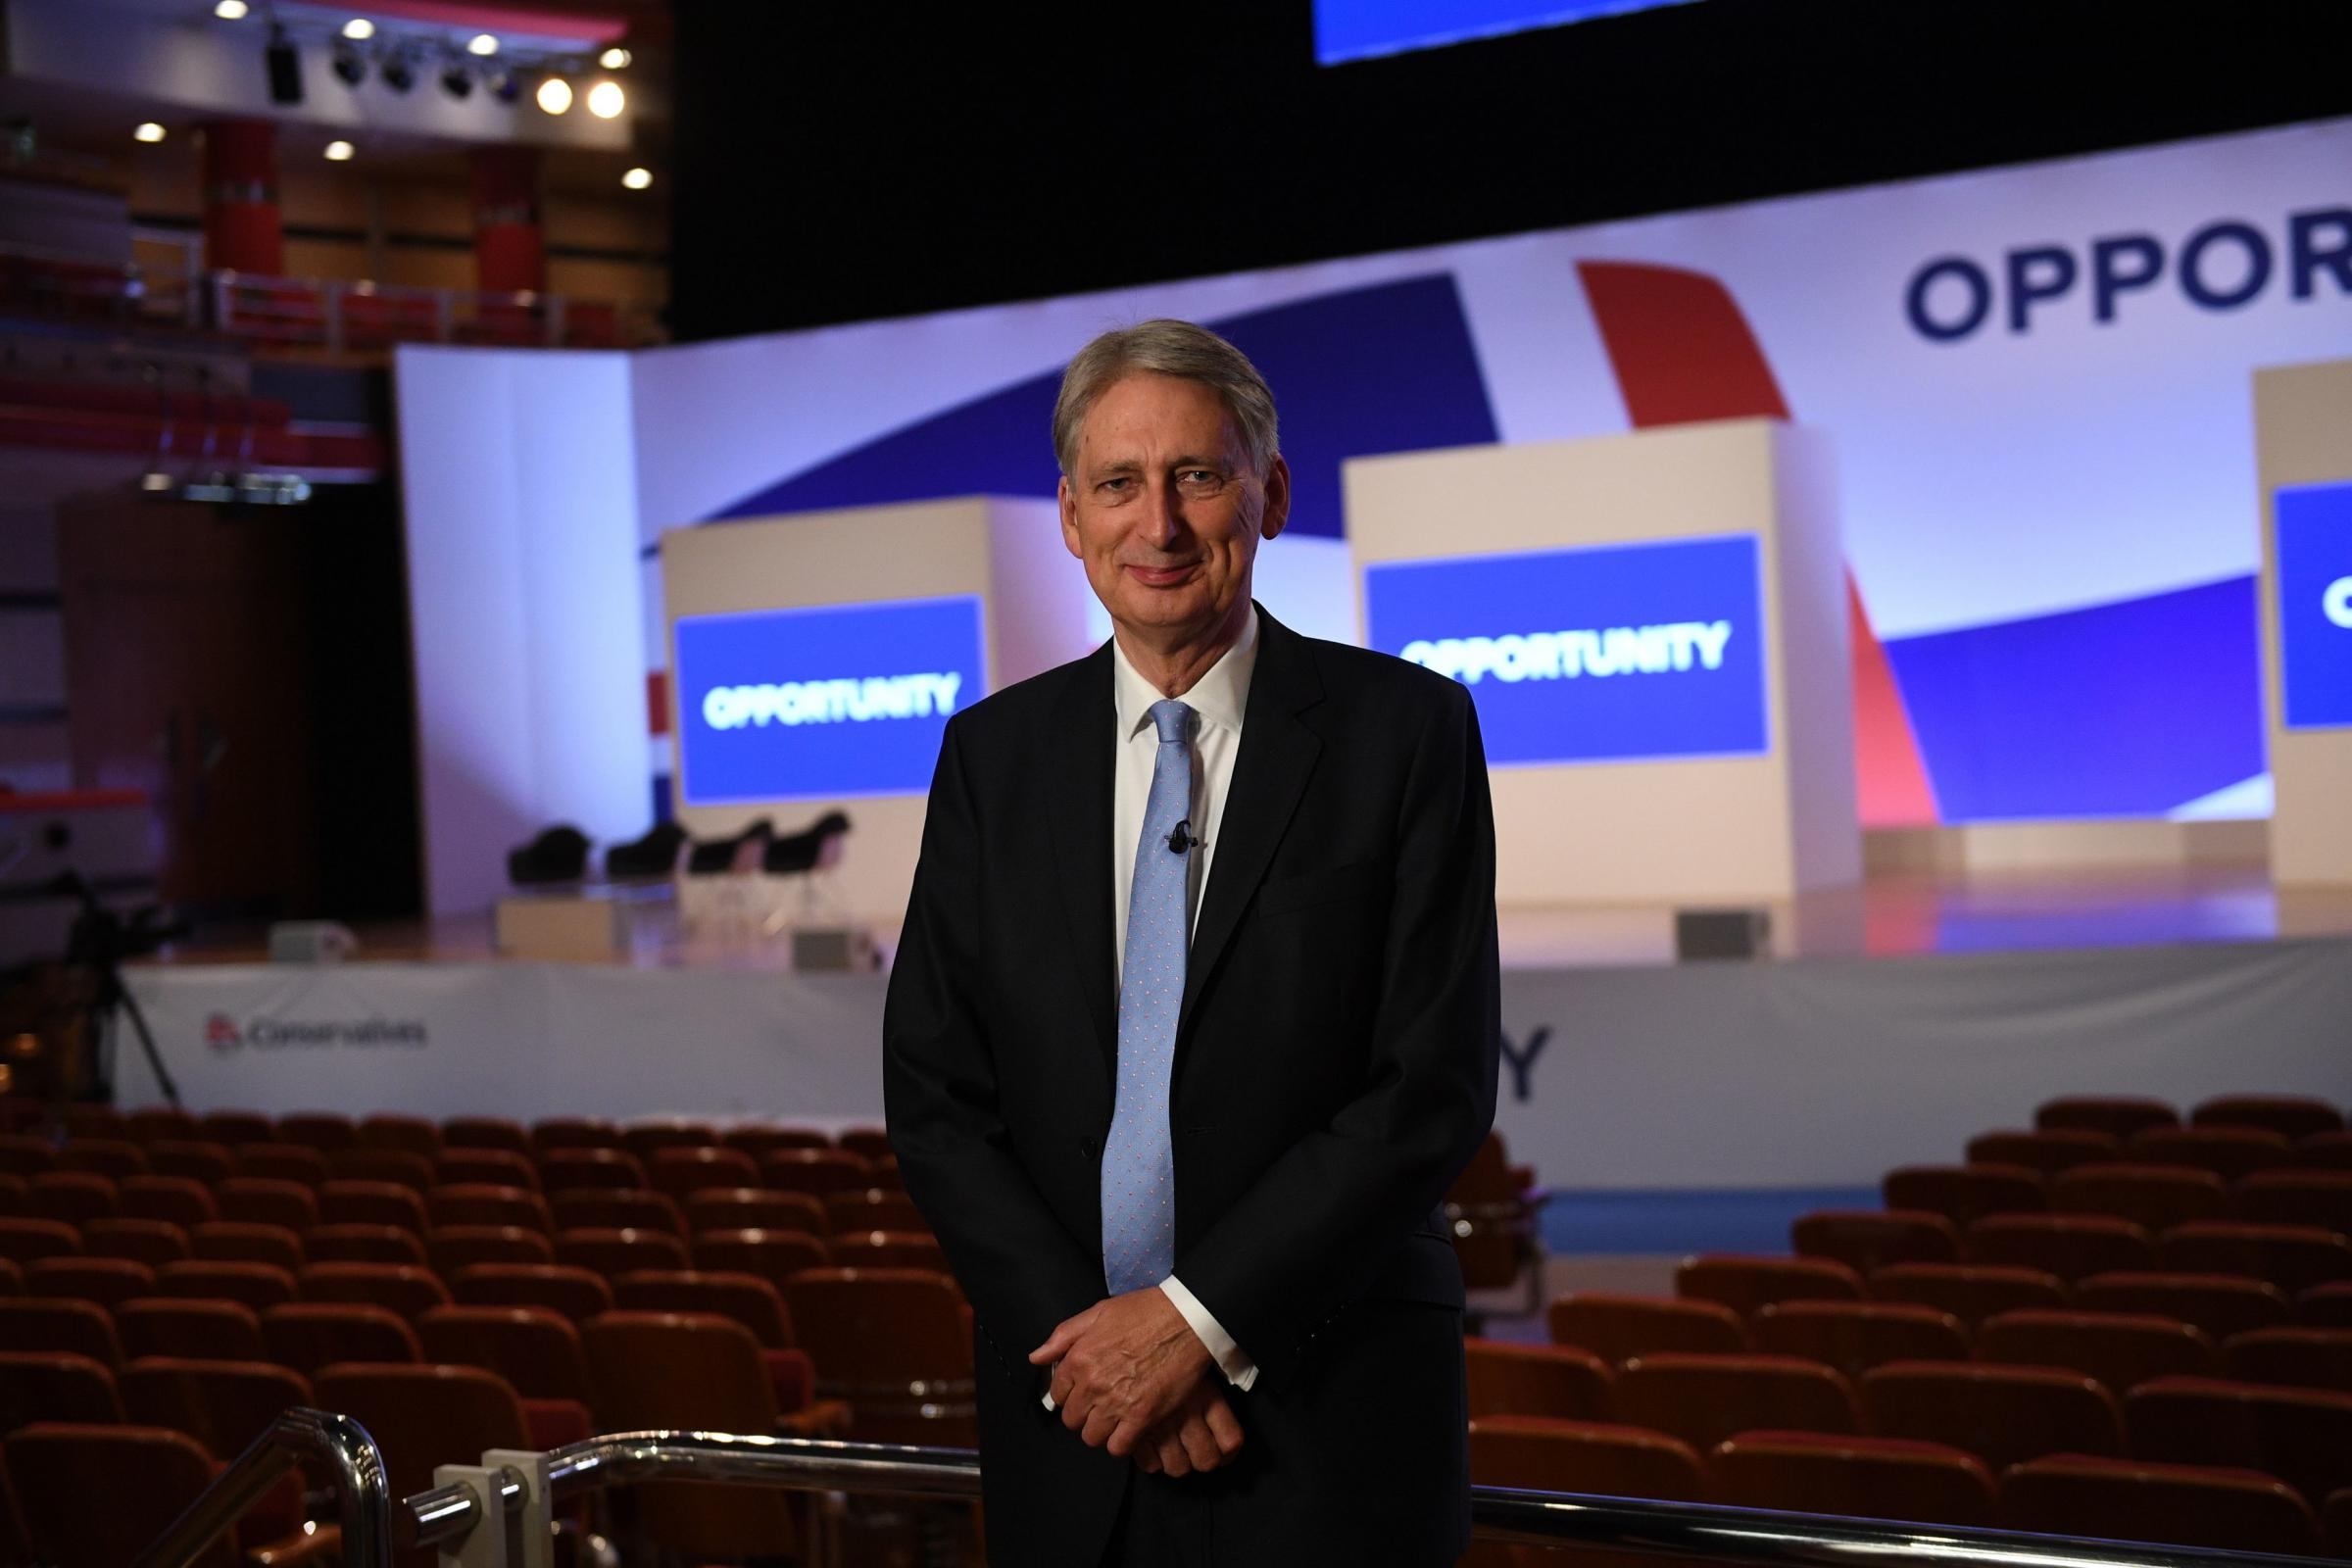 Chancellor of the Exchequer Philip Hammond ahead of his speech this afternoon at the Conservative Party annual conference at the International Convention Centre Birmingham. PRESS ASSOCIATION